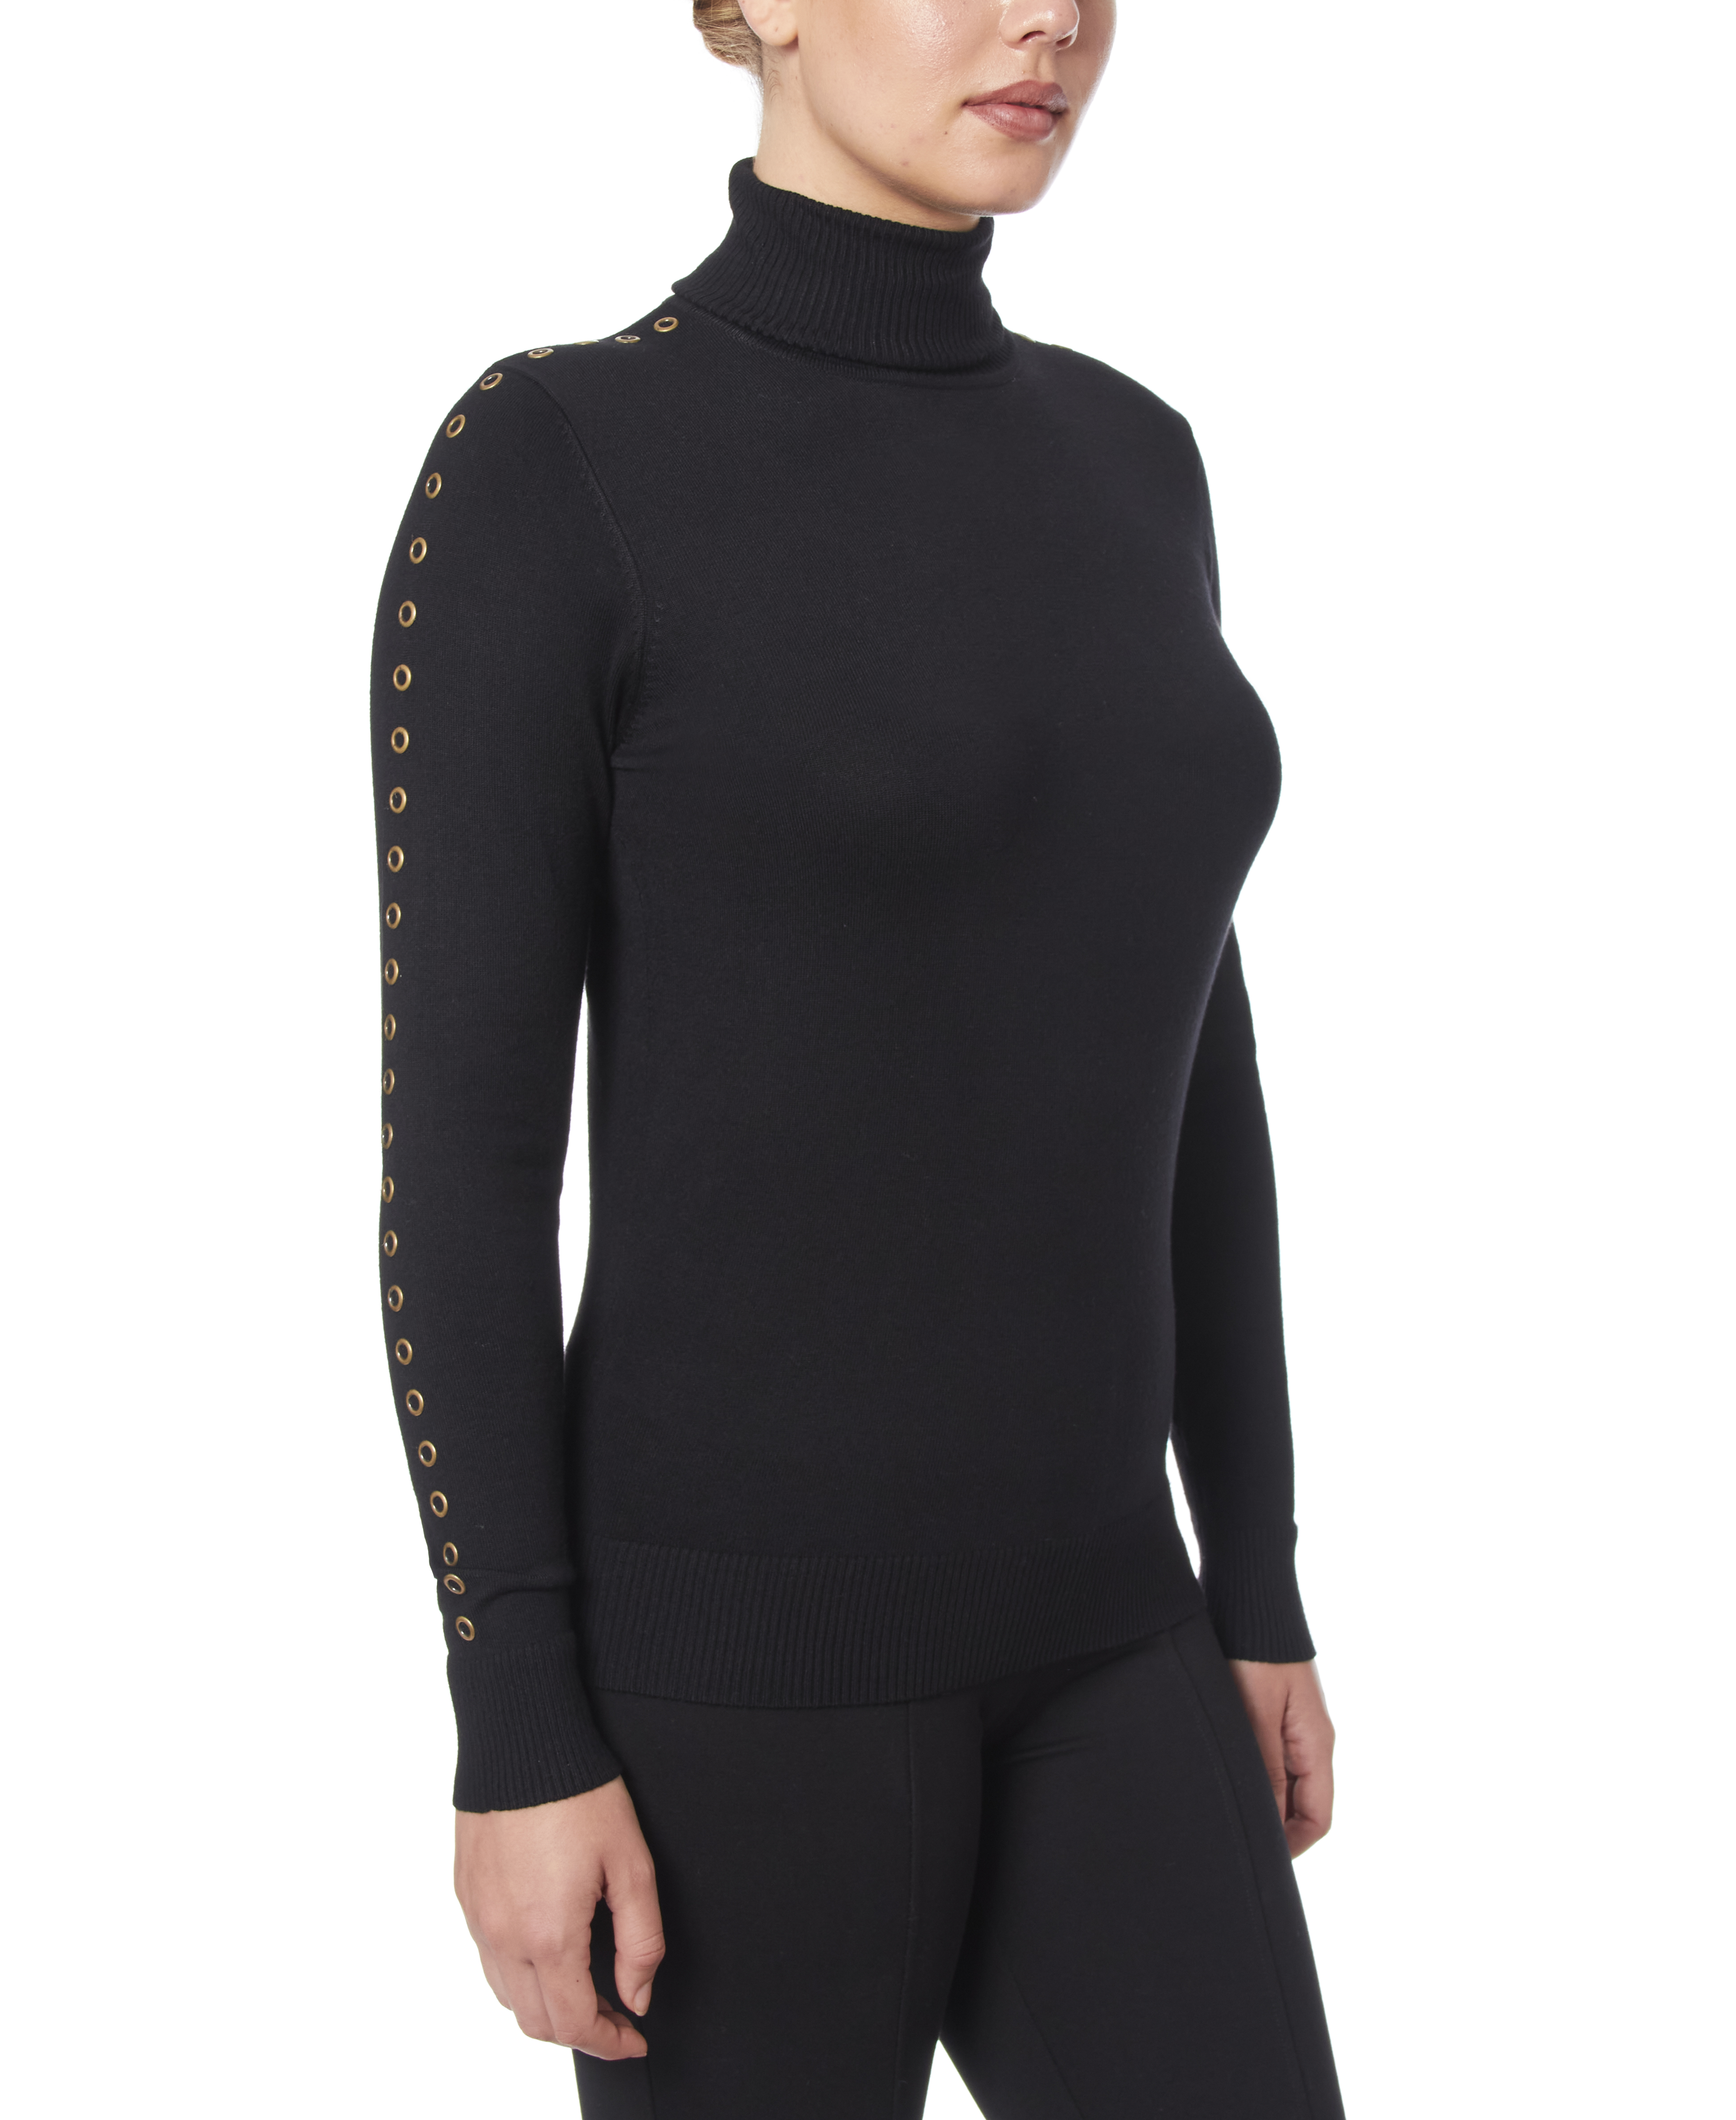 Solid Turtleneck with Detailed Sleeve in Black